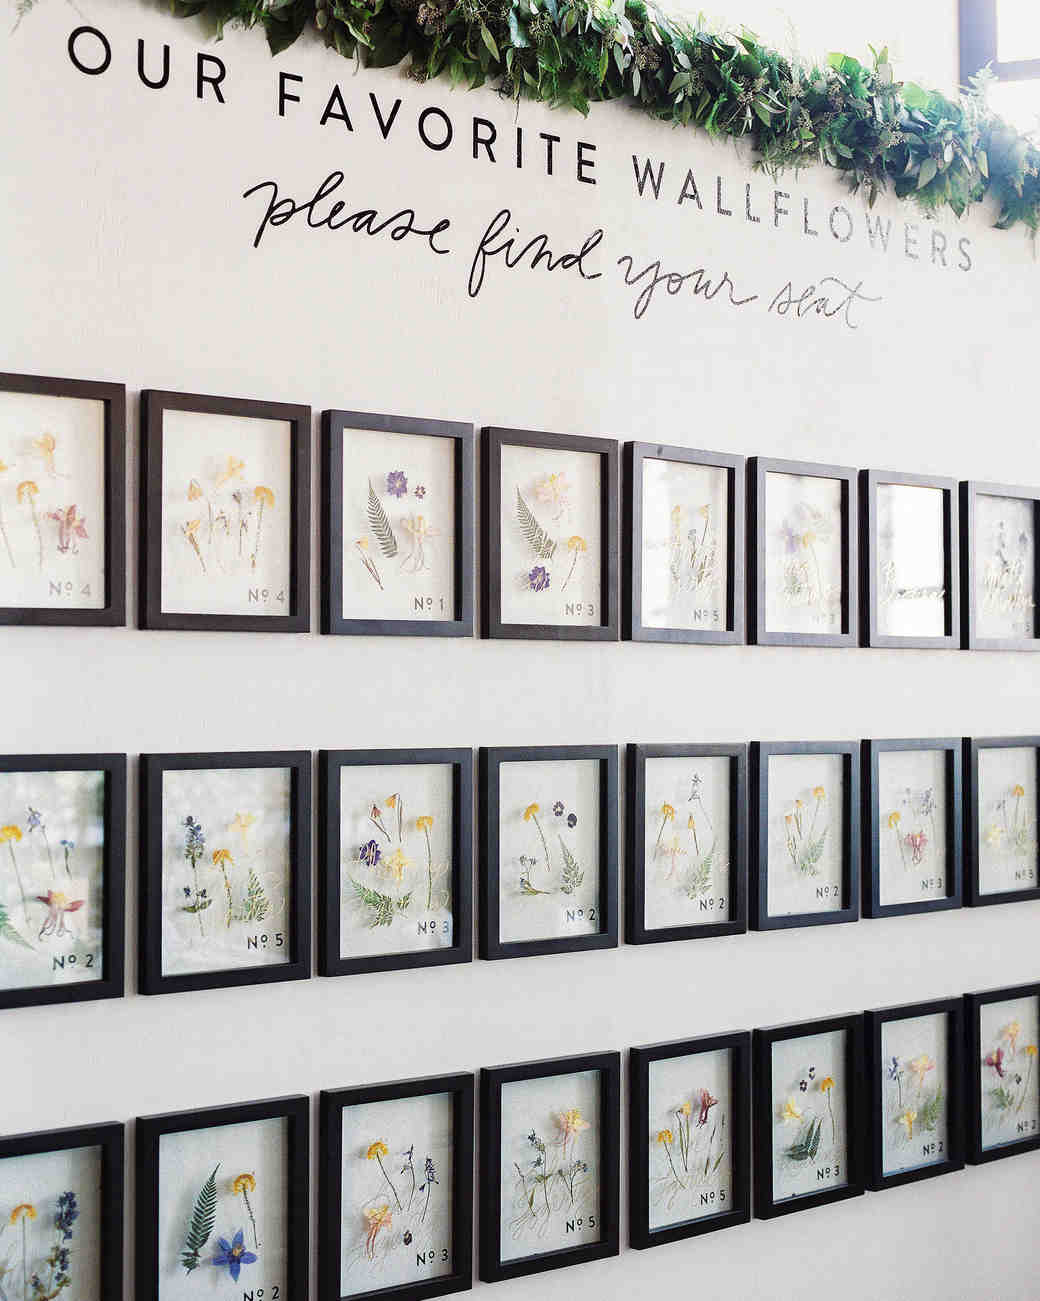 Wedding wallflower seating assignments also unique charts to guide guests their tables rh marthastewartweddings